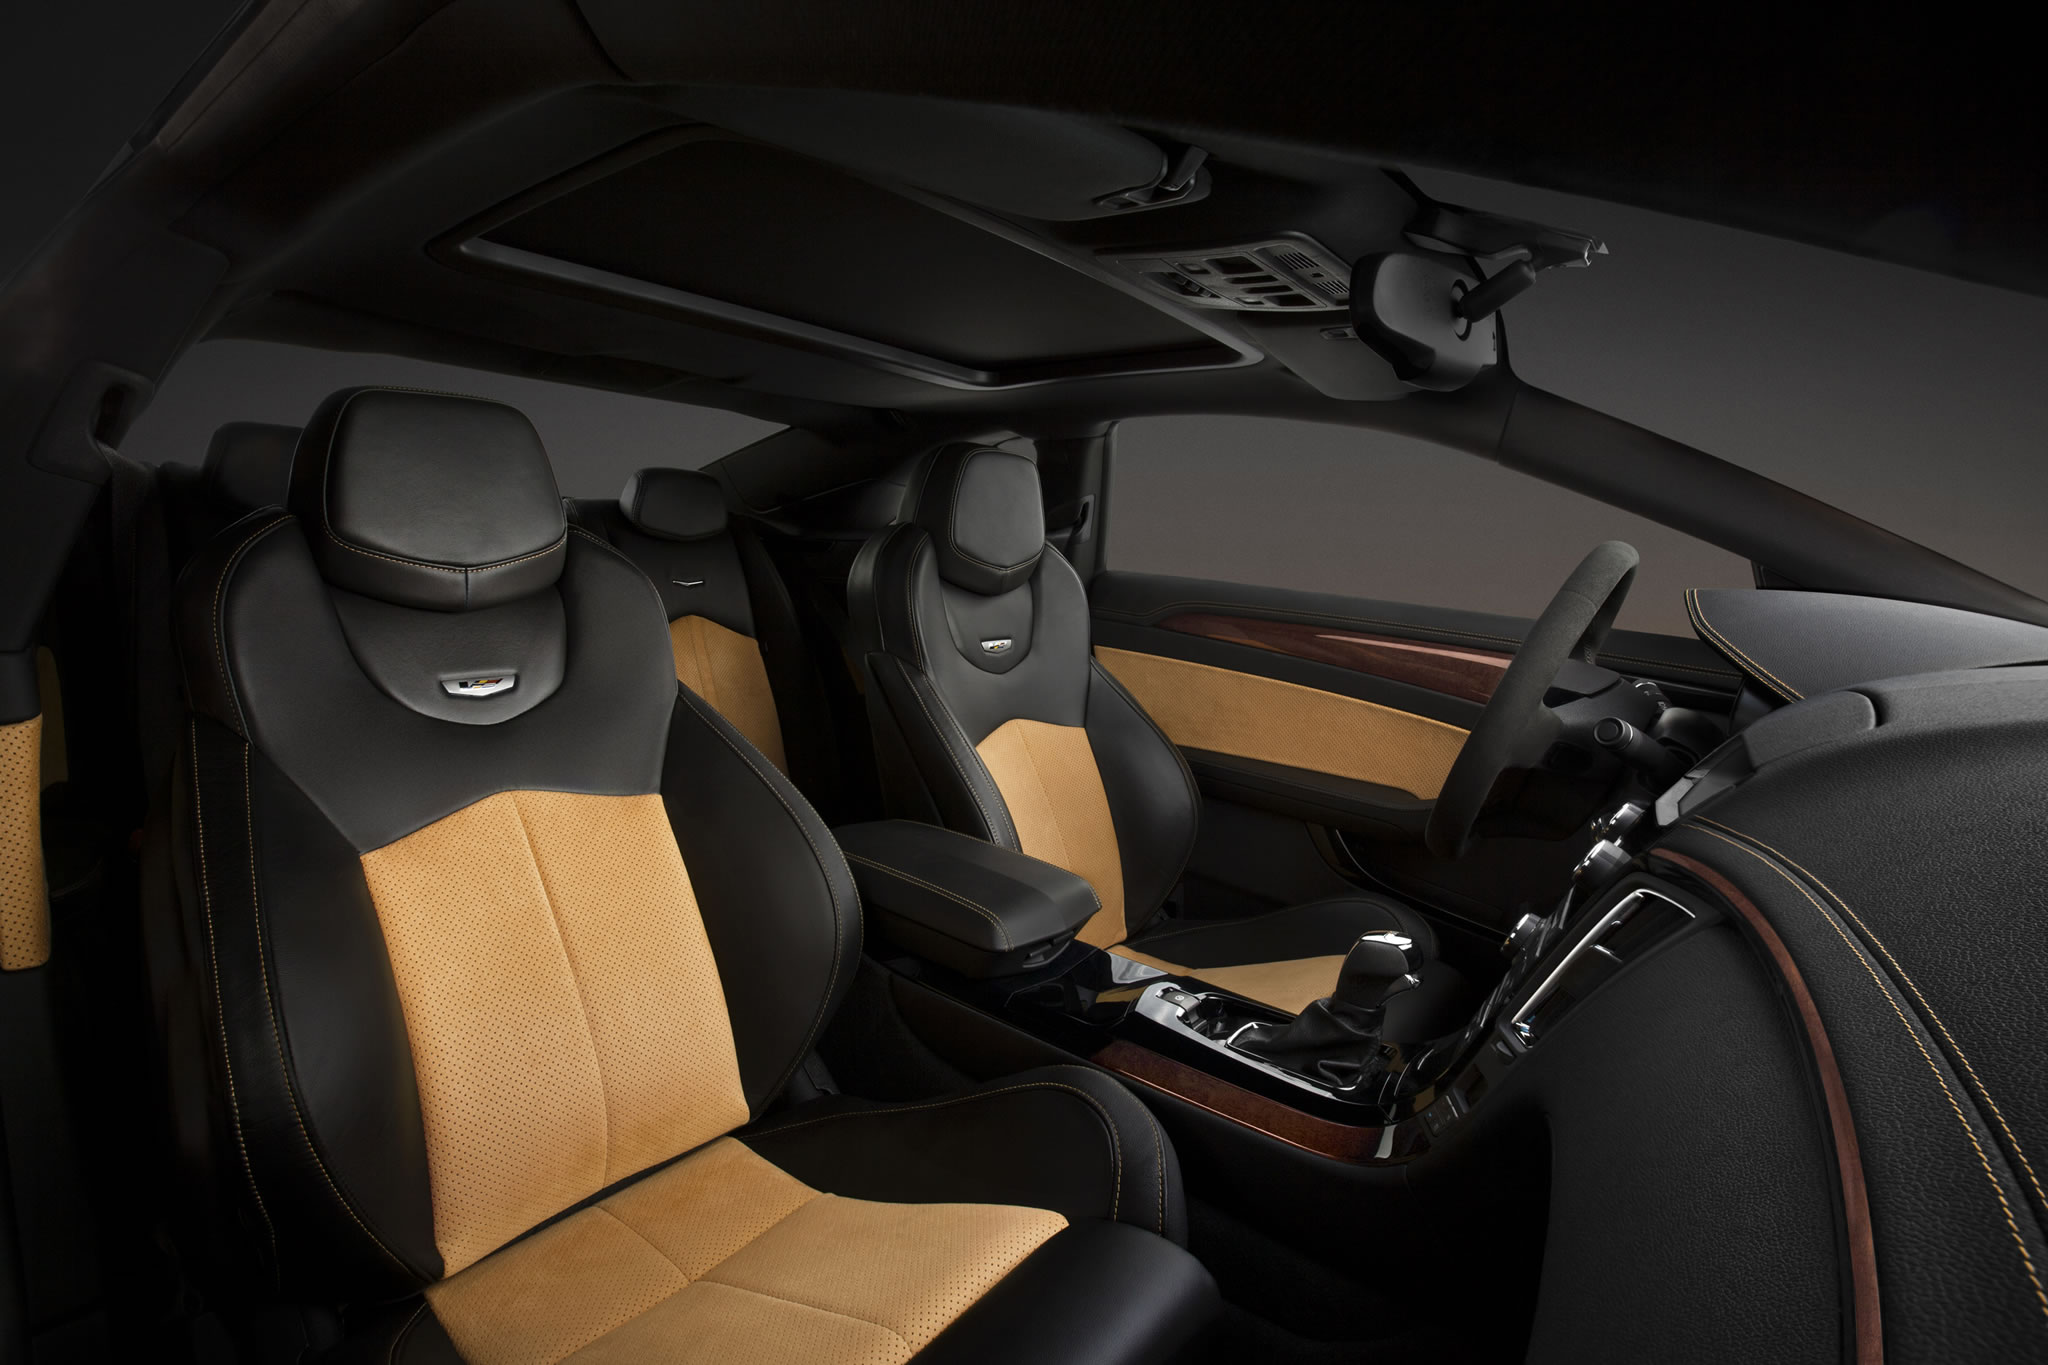 2014 Cadillac Cts V Coupe Interior Photo Front Seats Size 2048 X